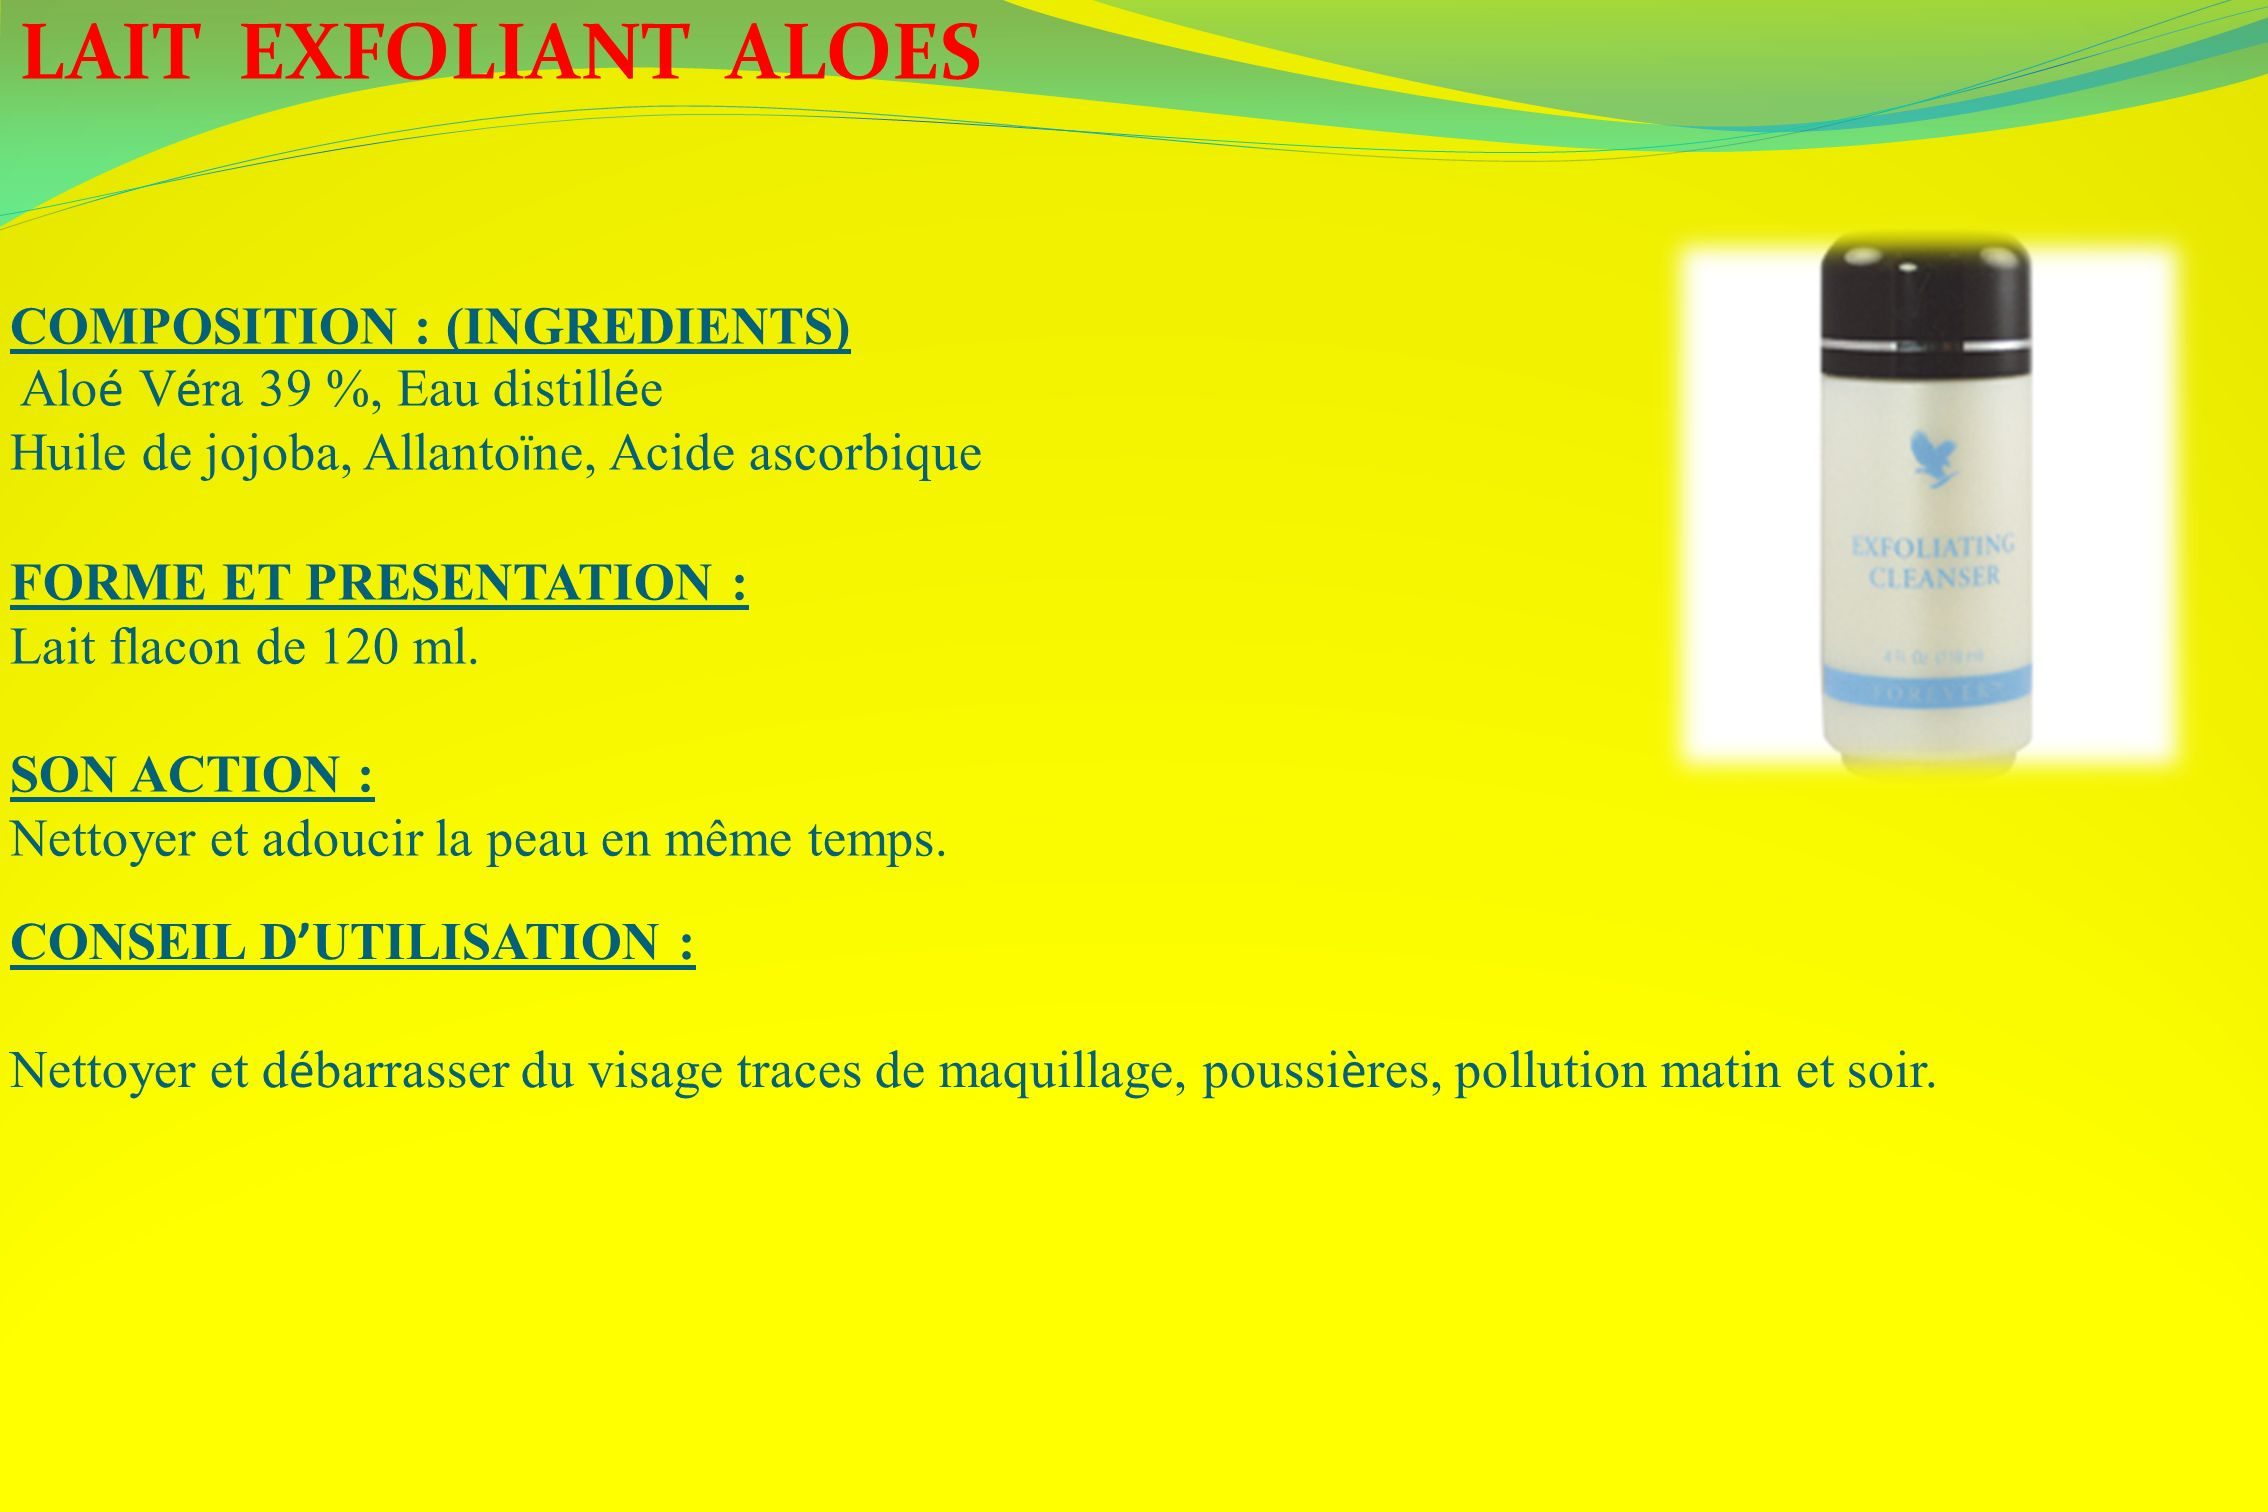 LAIT EXFOLIANT ALOES COMPOSITION : (INGREDIENTS)